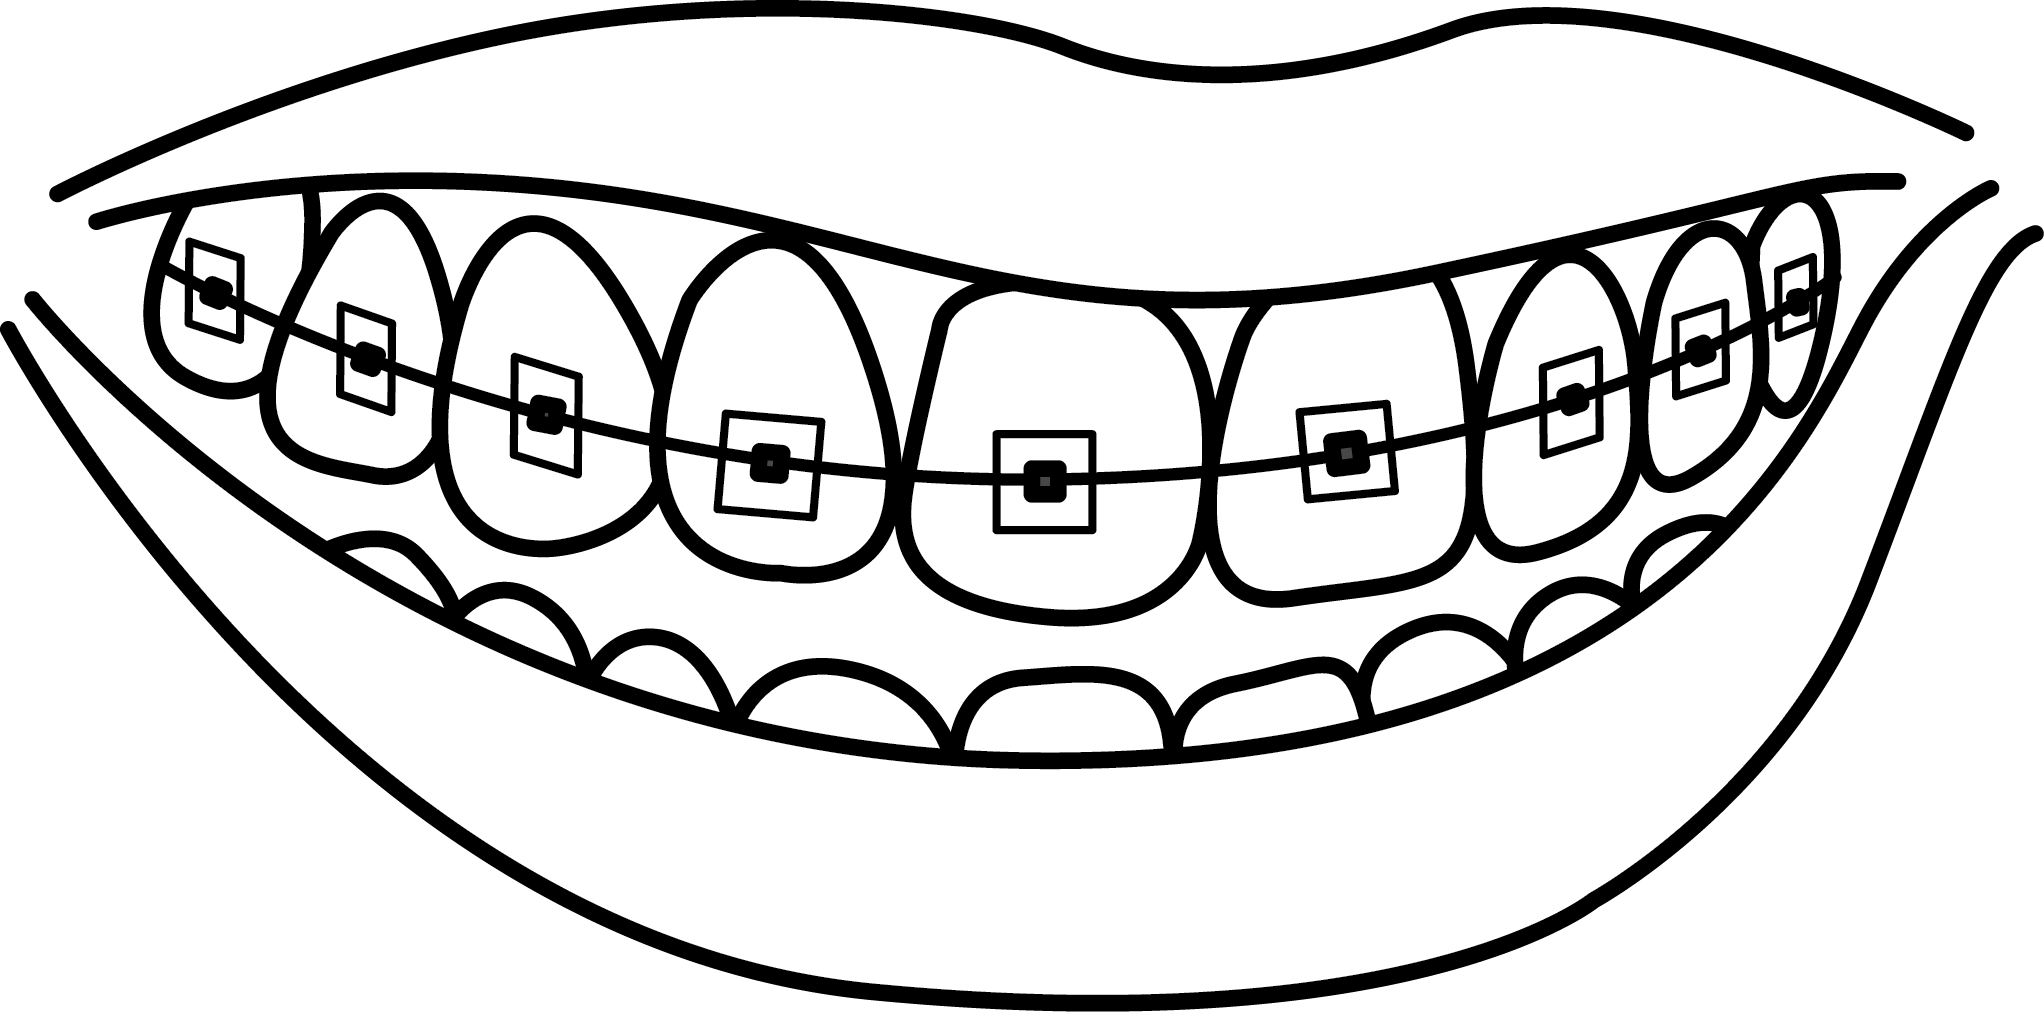 Braces clipart black and white. Dental dentistry human tooth